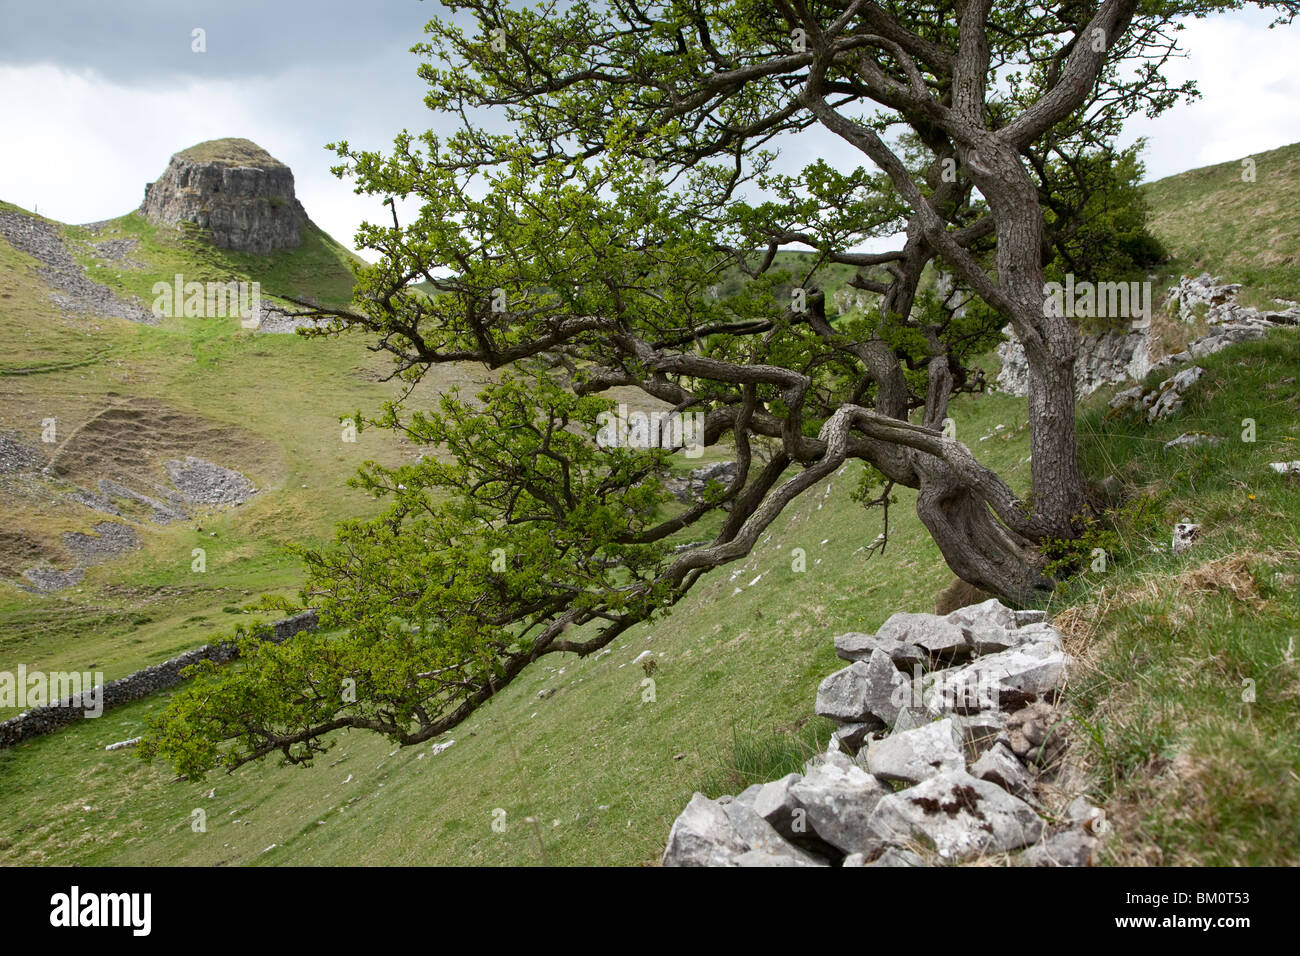 Hawthorn, growing from limestone outcrop, Cressbrook Dale, Derbyshire - Stock Image